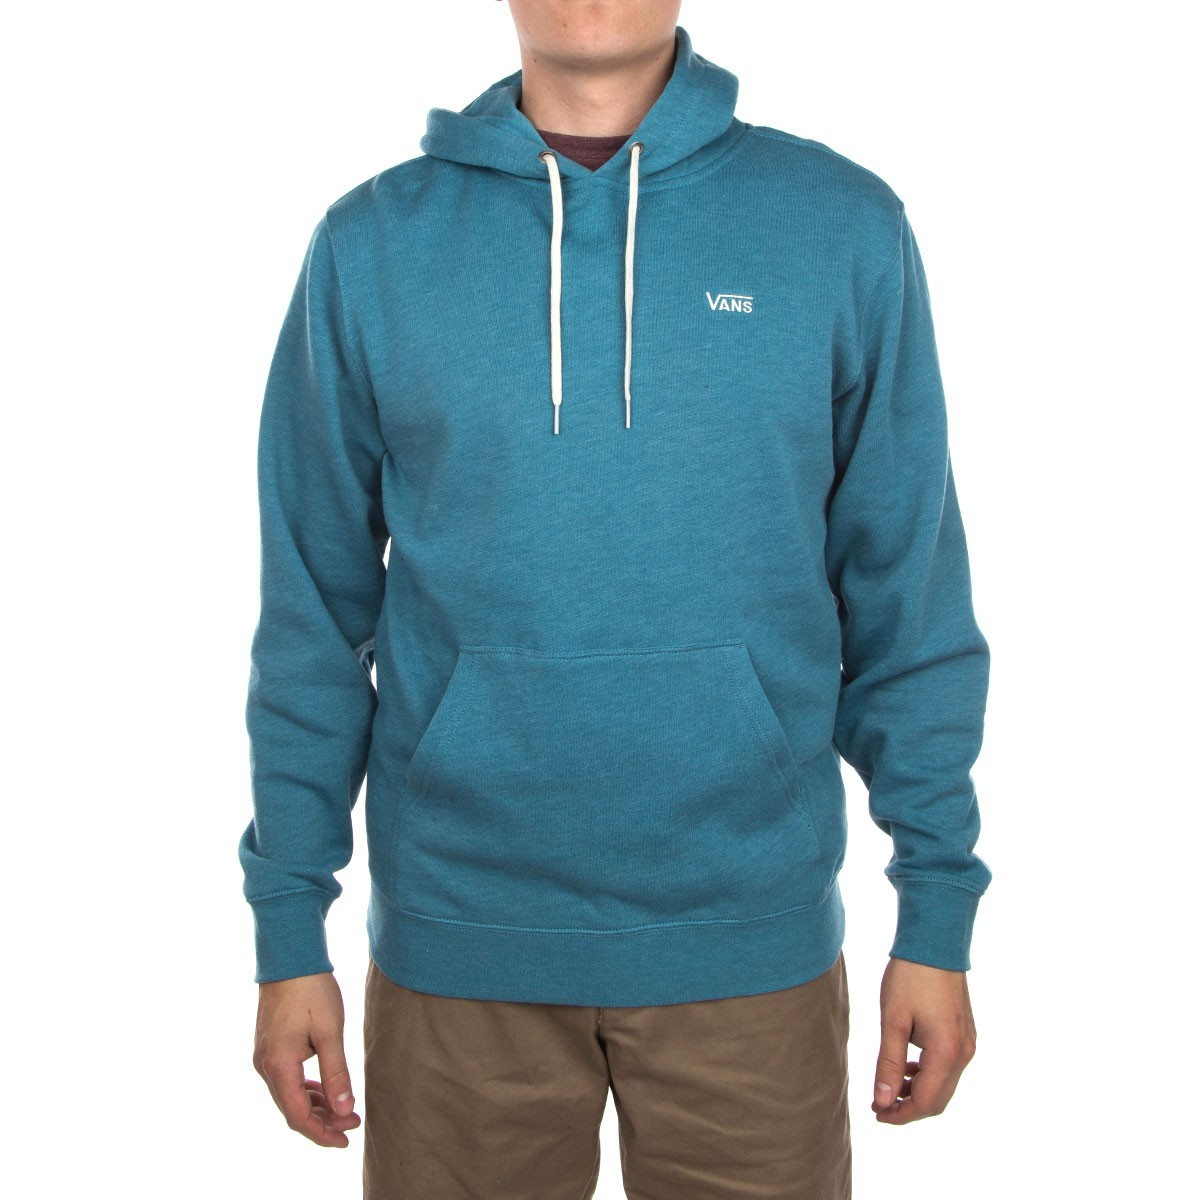 624b71da2b vans-core-basics-pullover-hoodie-storm-blue-heather-1.1506741219.jpg